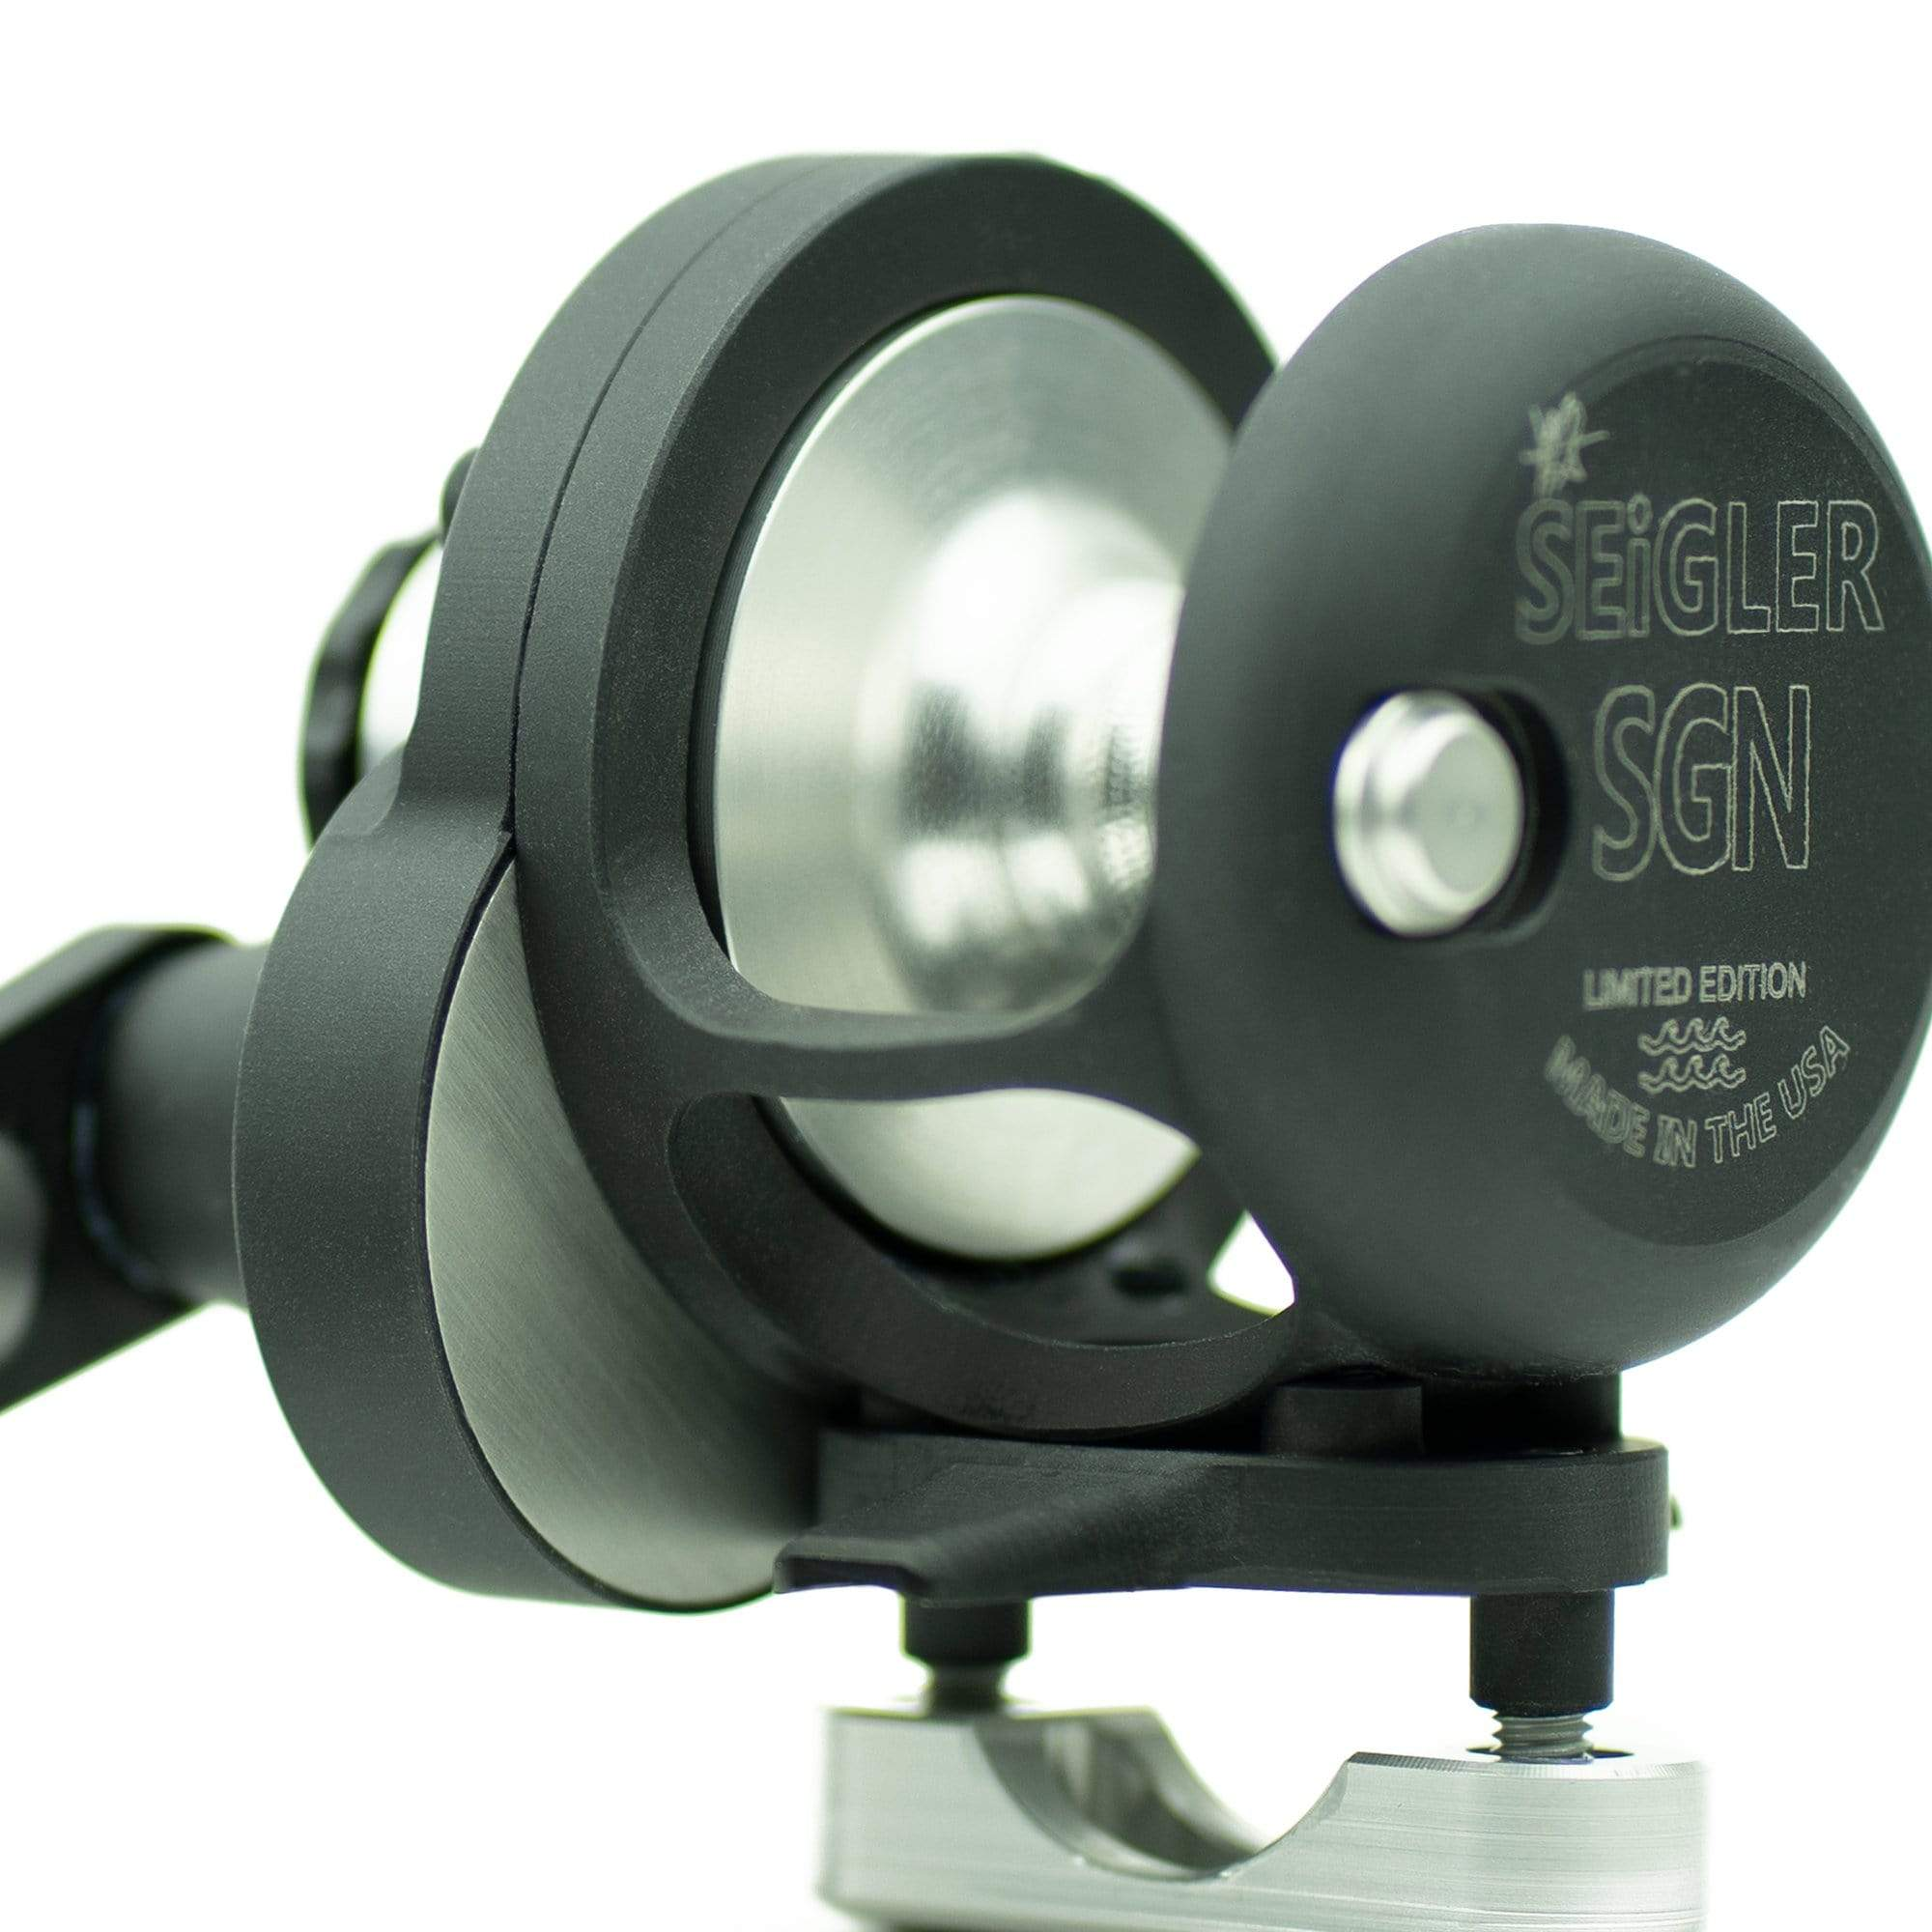 Seigler SGN (Small Game Narrow) Limited Edition Reels